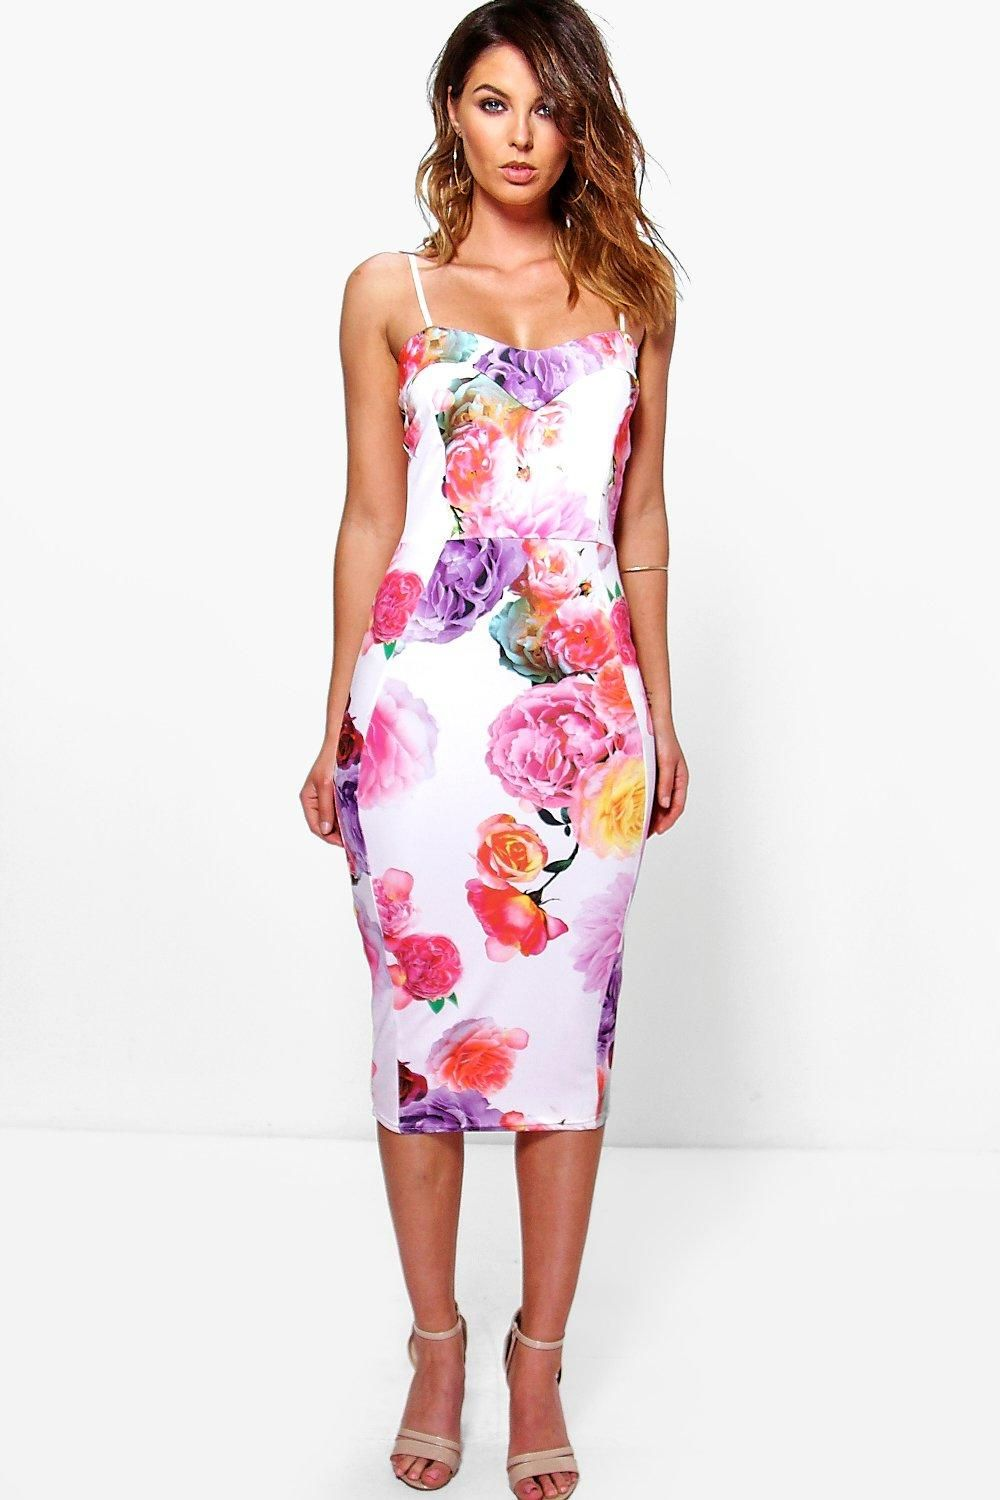 All the Floral Dresses Youve Ever Wanted Are Here picture